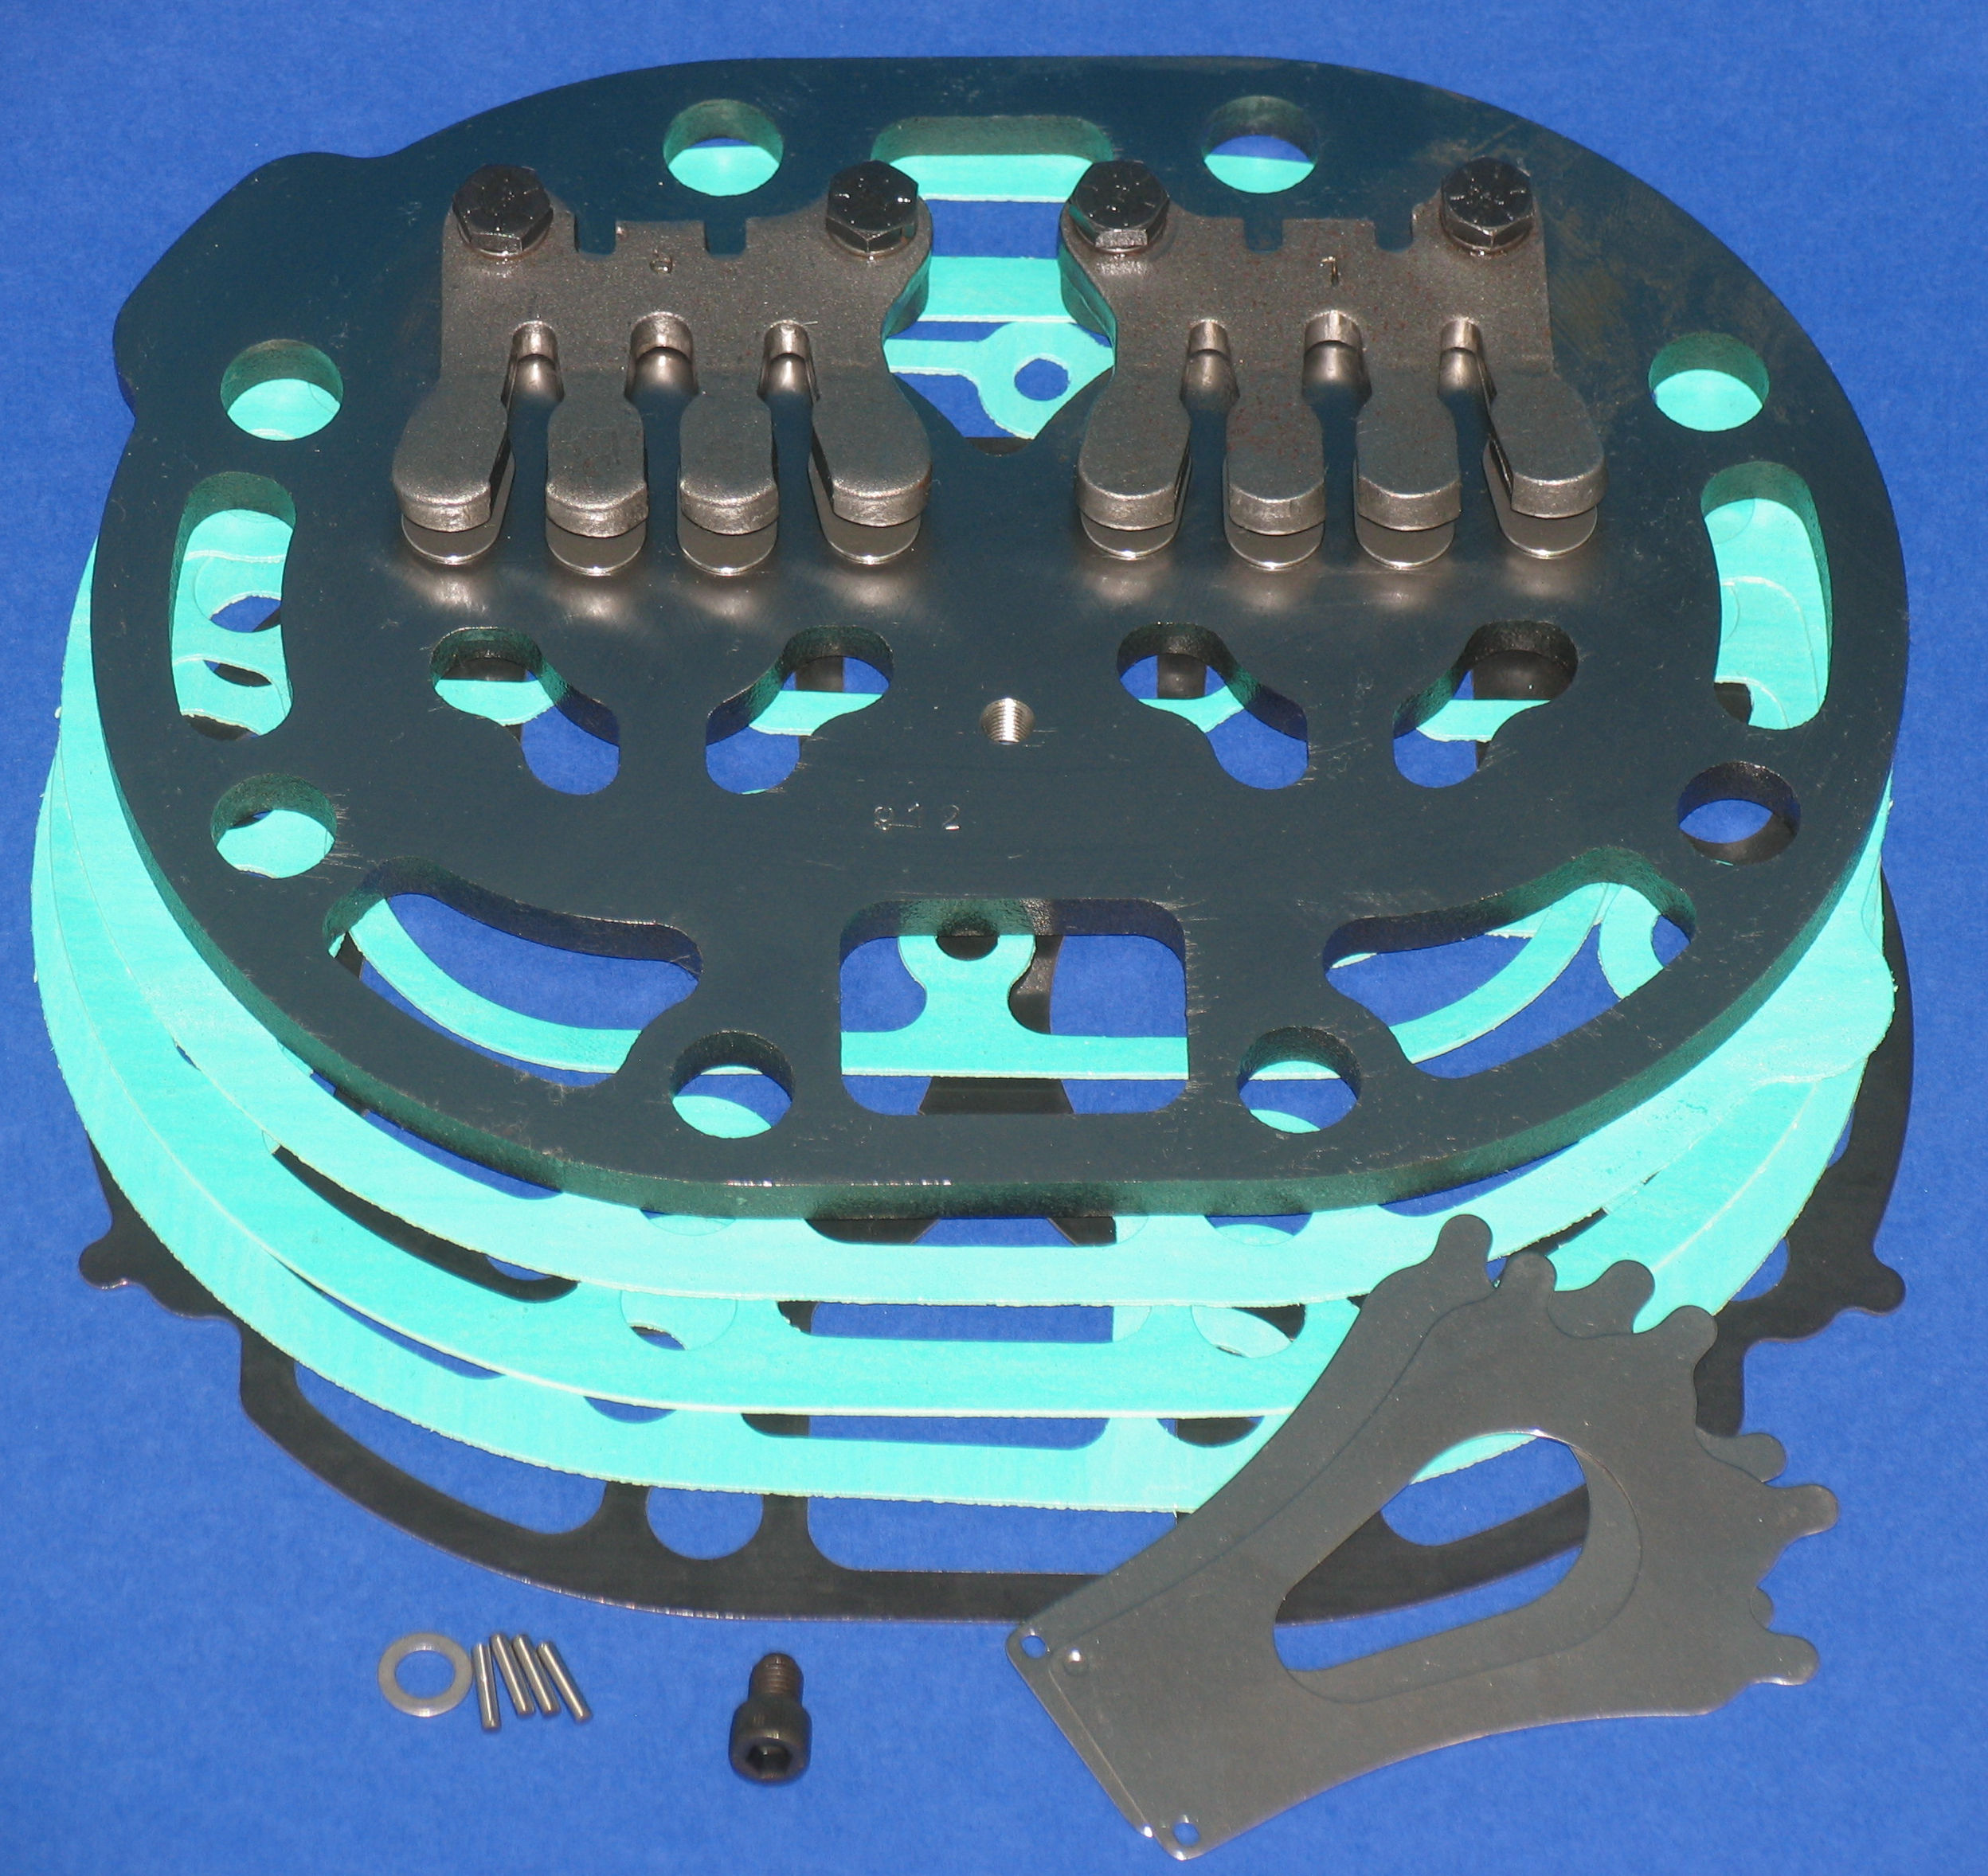 PLT-CR143 Low Temp Suction Plate Kit; R/N 06EA660-143